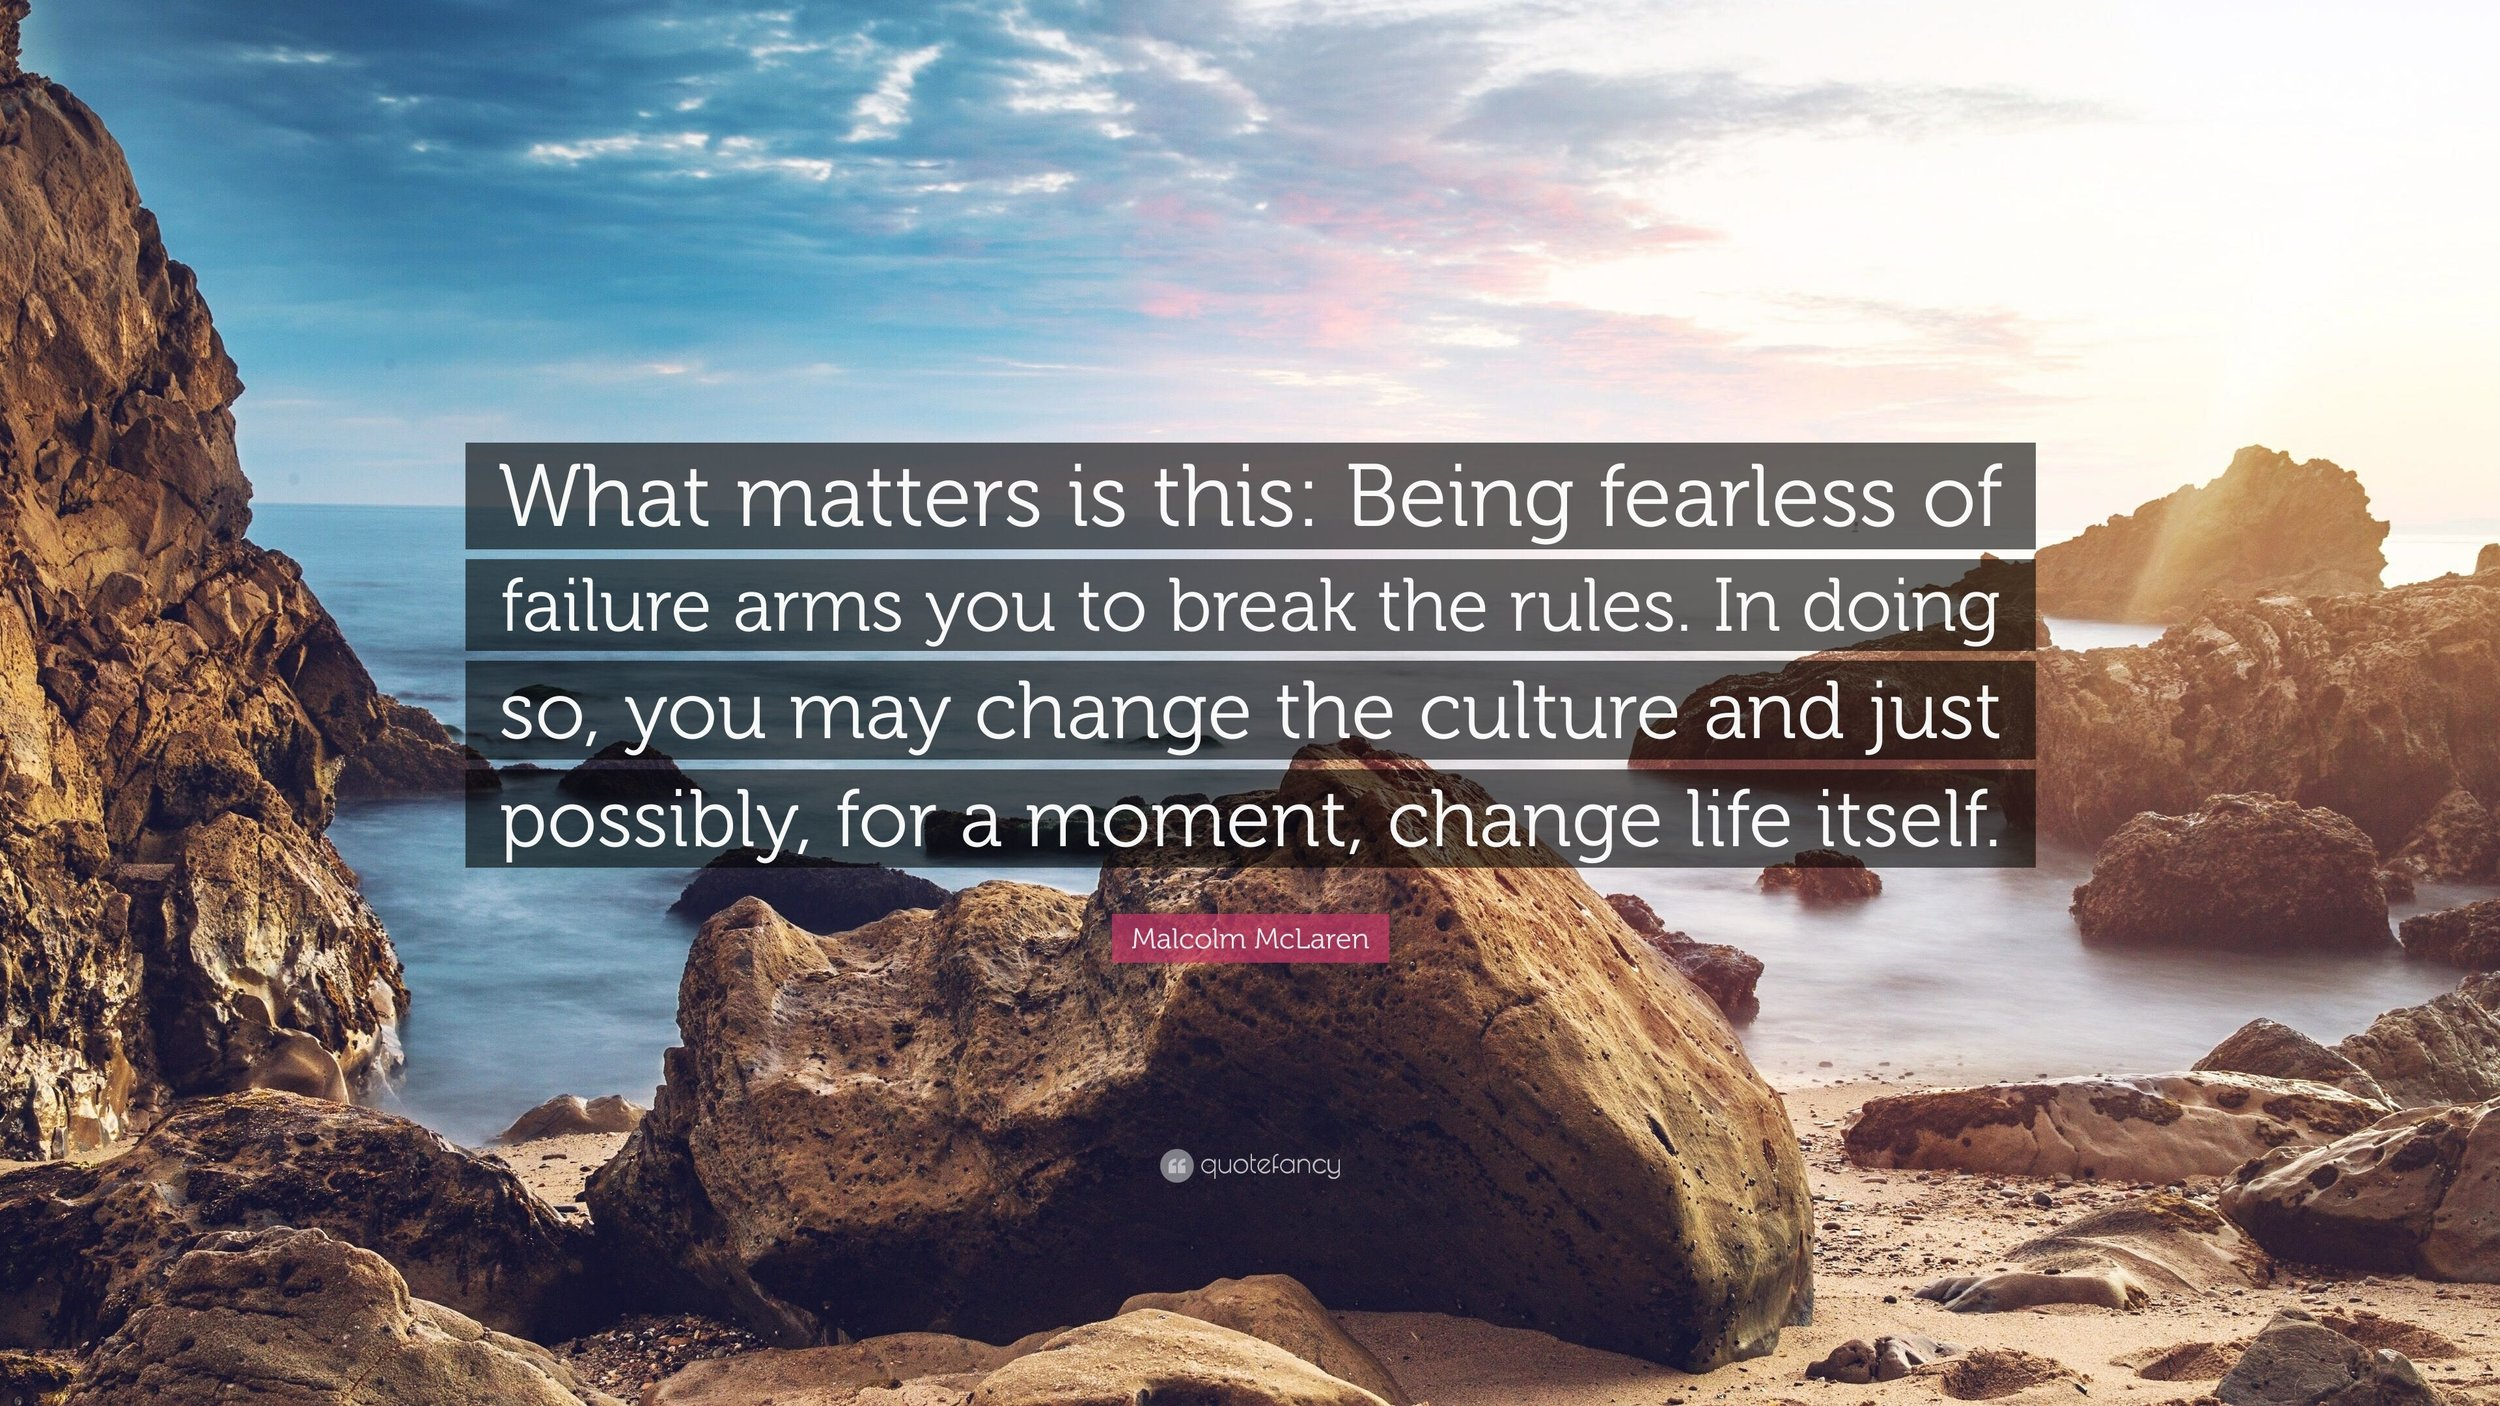 4817232-Malcolm-McLaren-Quote-What-matters-is-this-Being-fearless-of.jpg